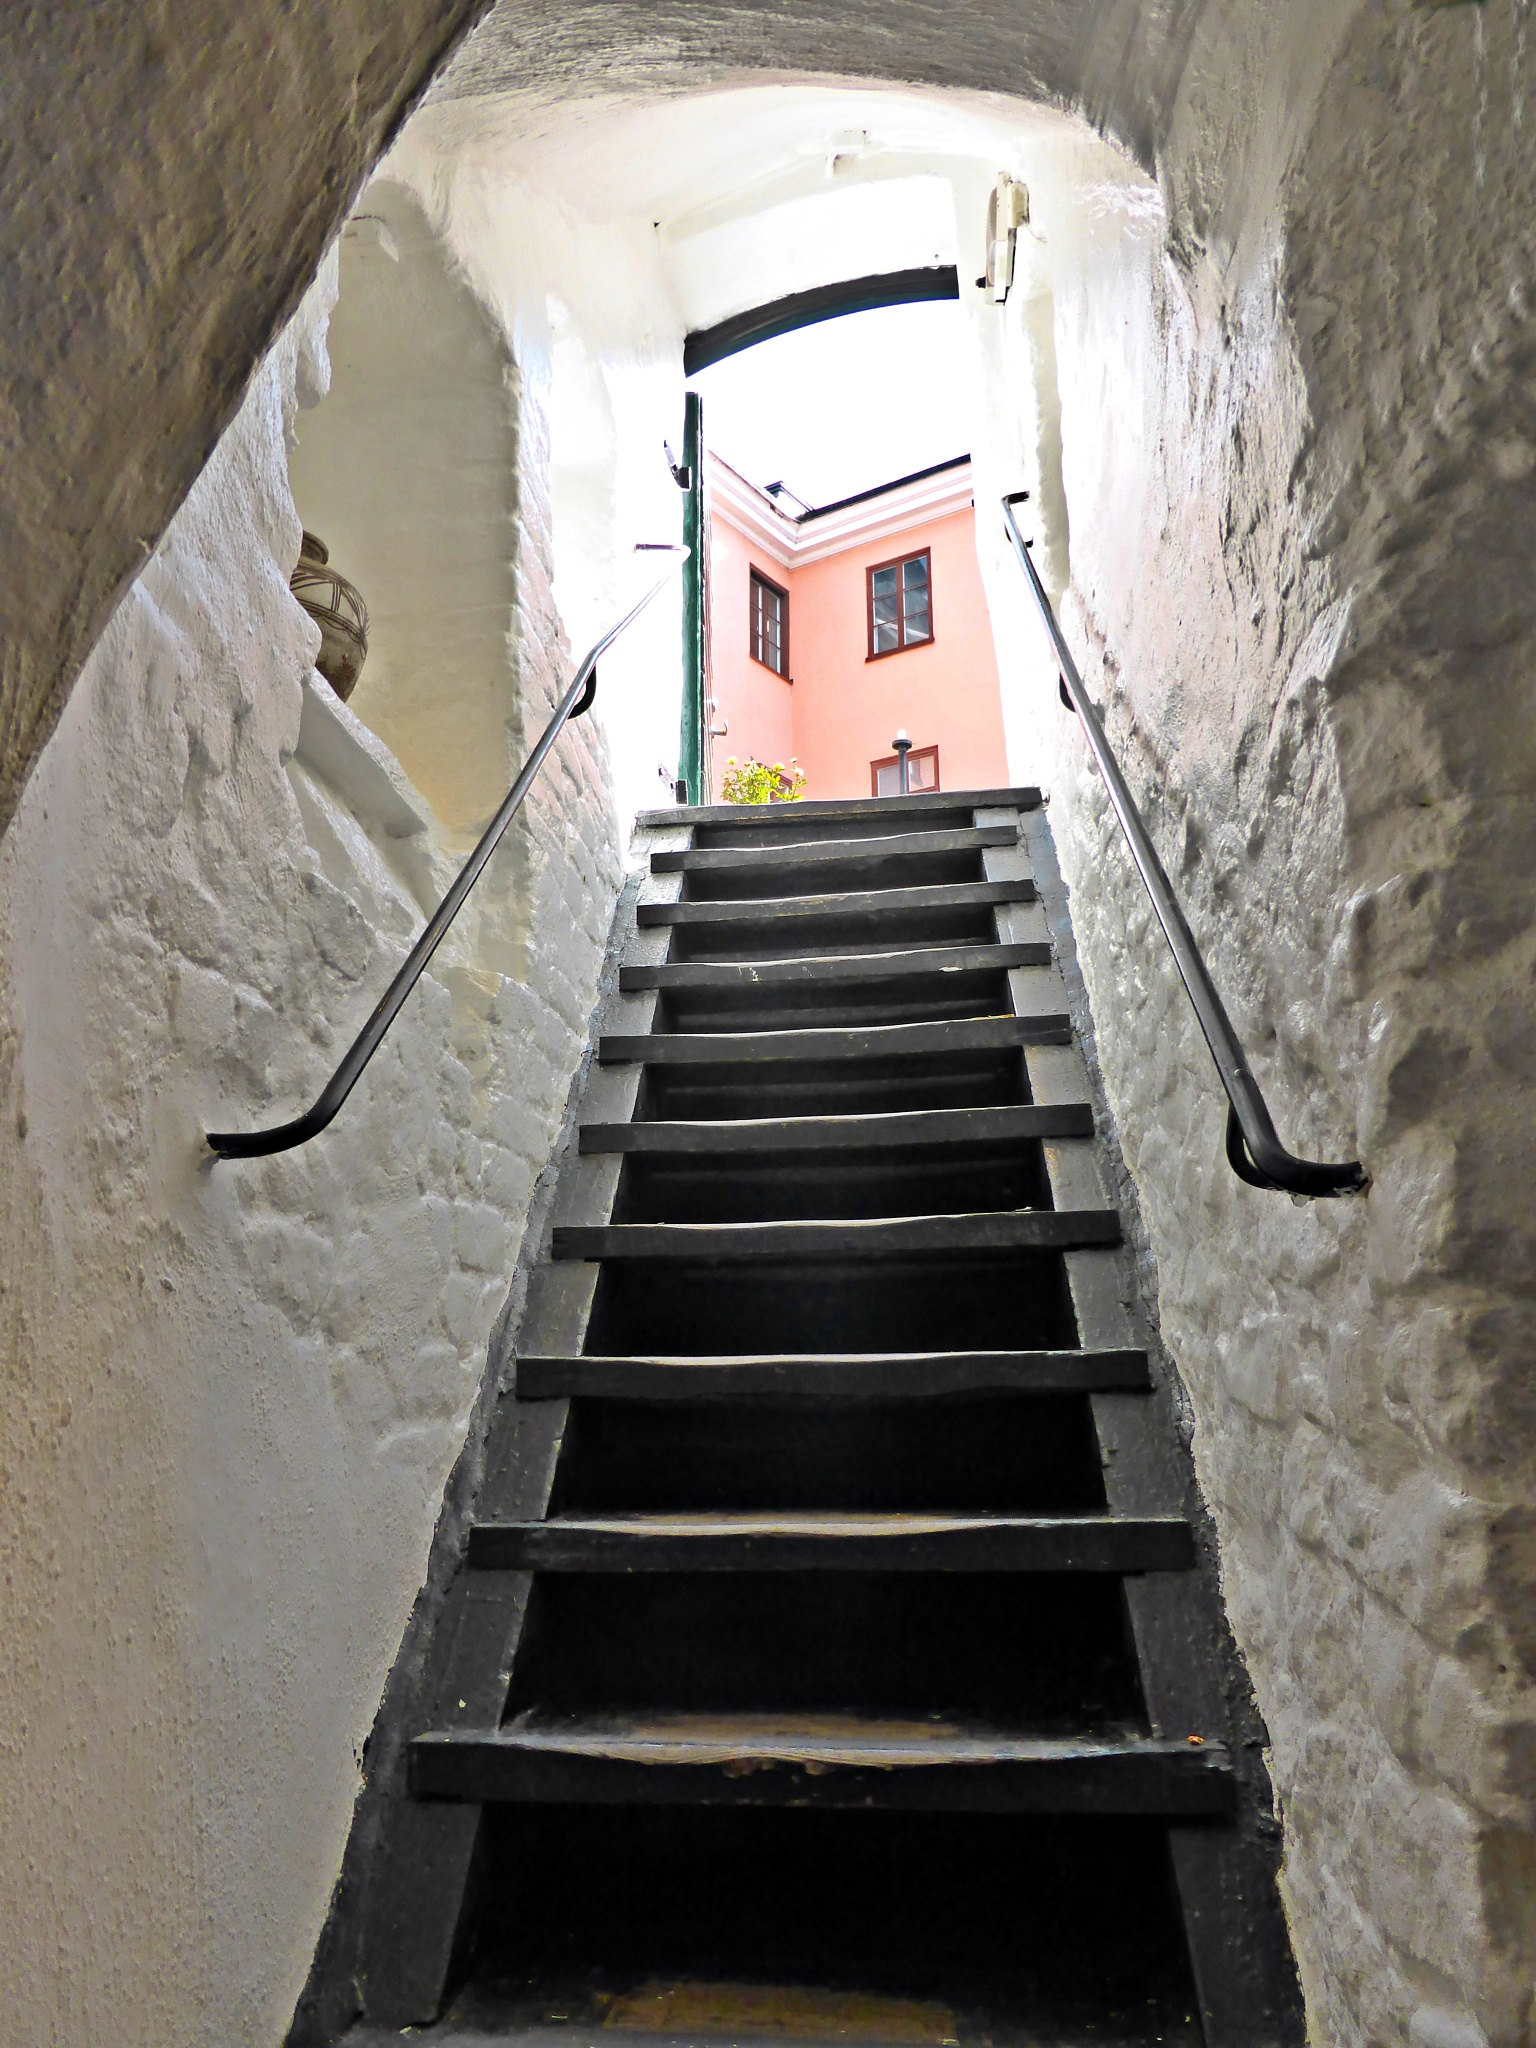 Stairs from medieval by Luba